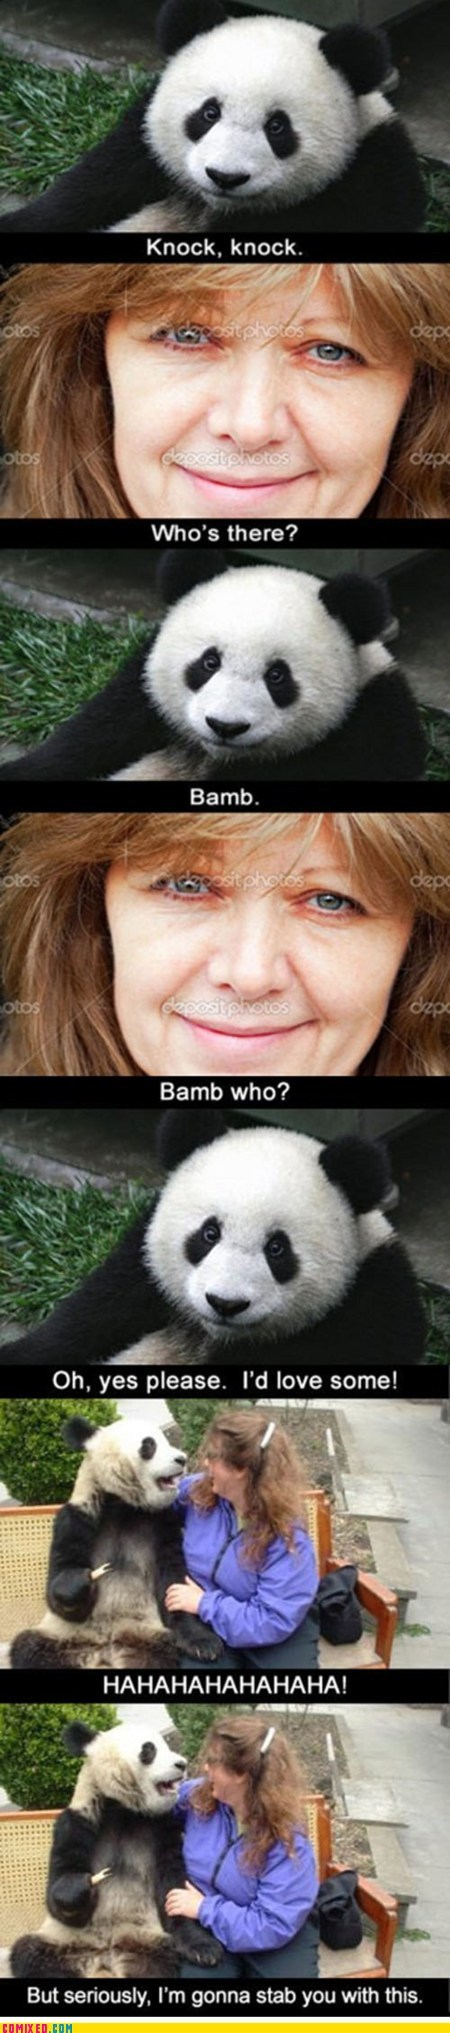 animals best of week cute knock knock panda stabbed